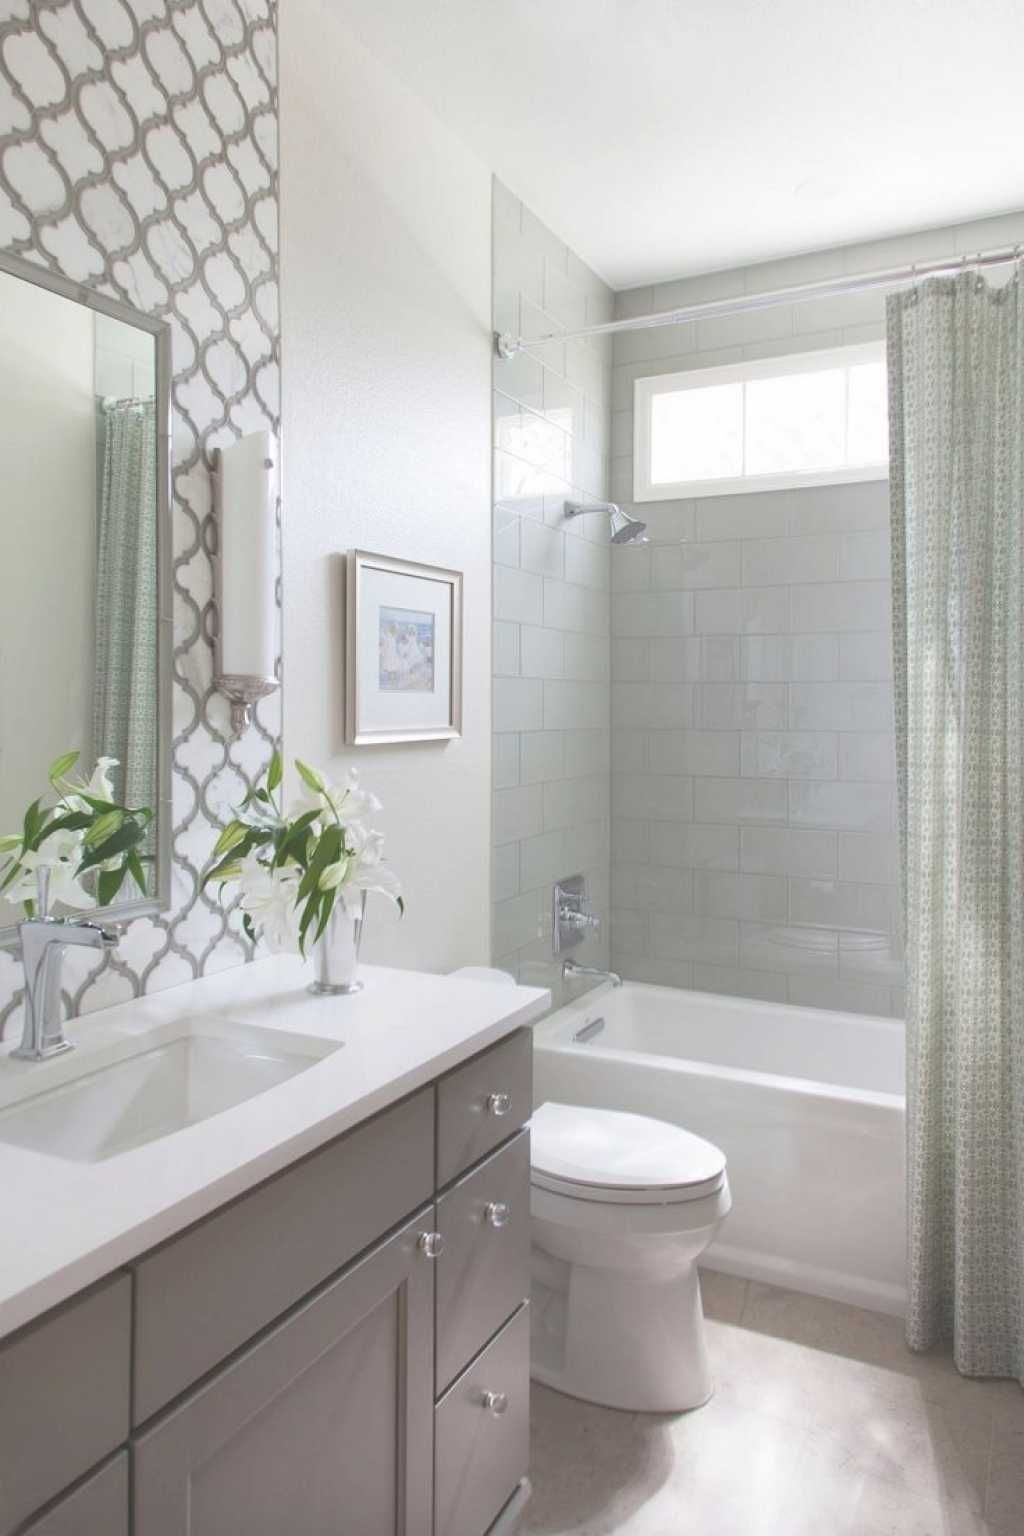 bathroom tub designs. Small Bathroom Tub Shower Combo Remodeling Ideas Http://zoladecor.com/small- Bathroom-tub-shower-combo-remodeling-ideas Designs O